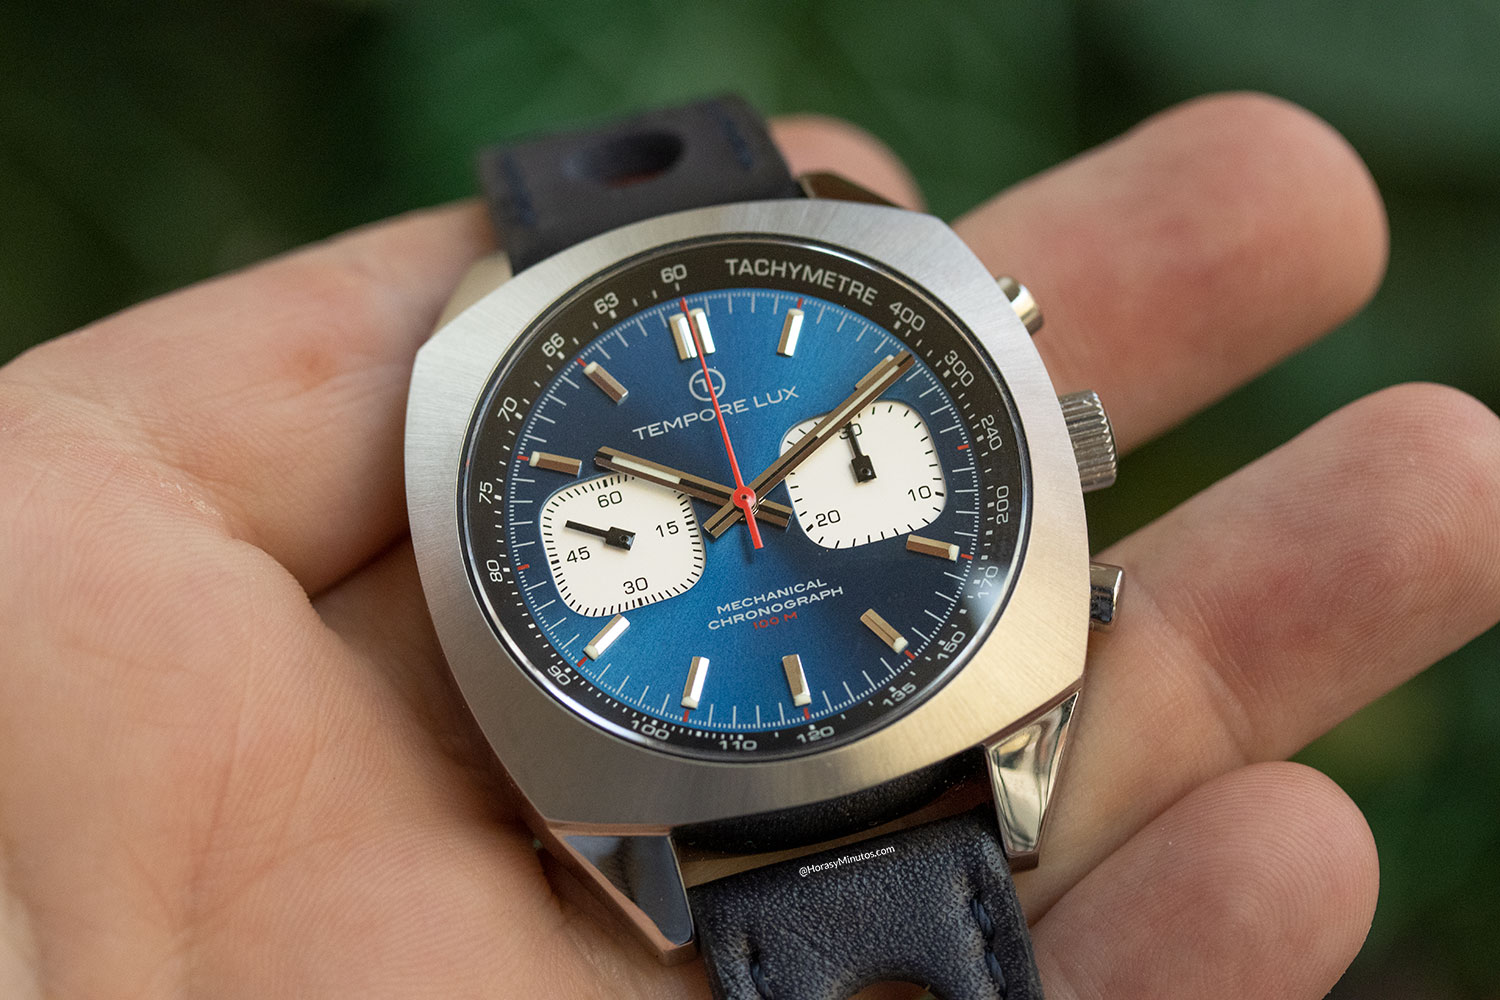 Tempore Lux The Racing One azul